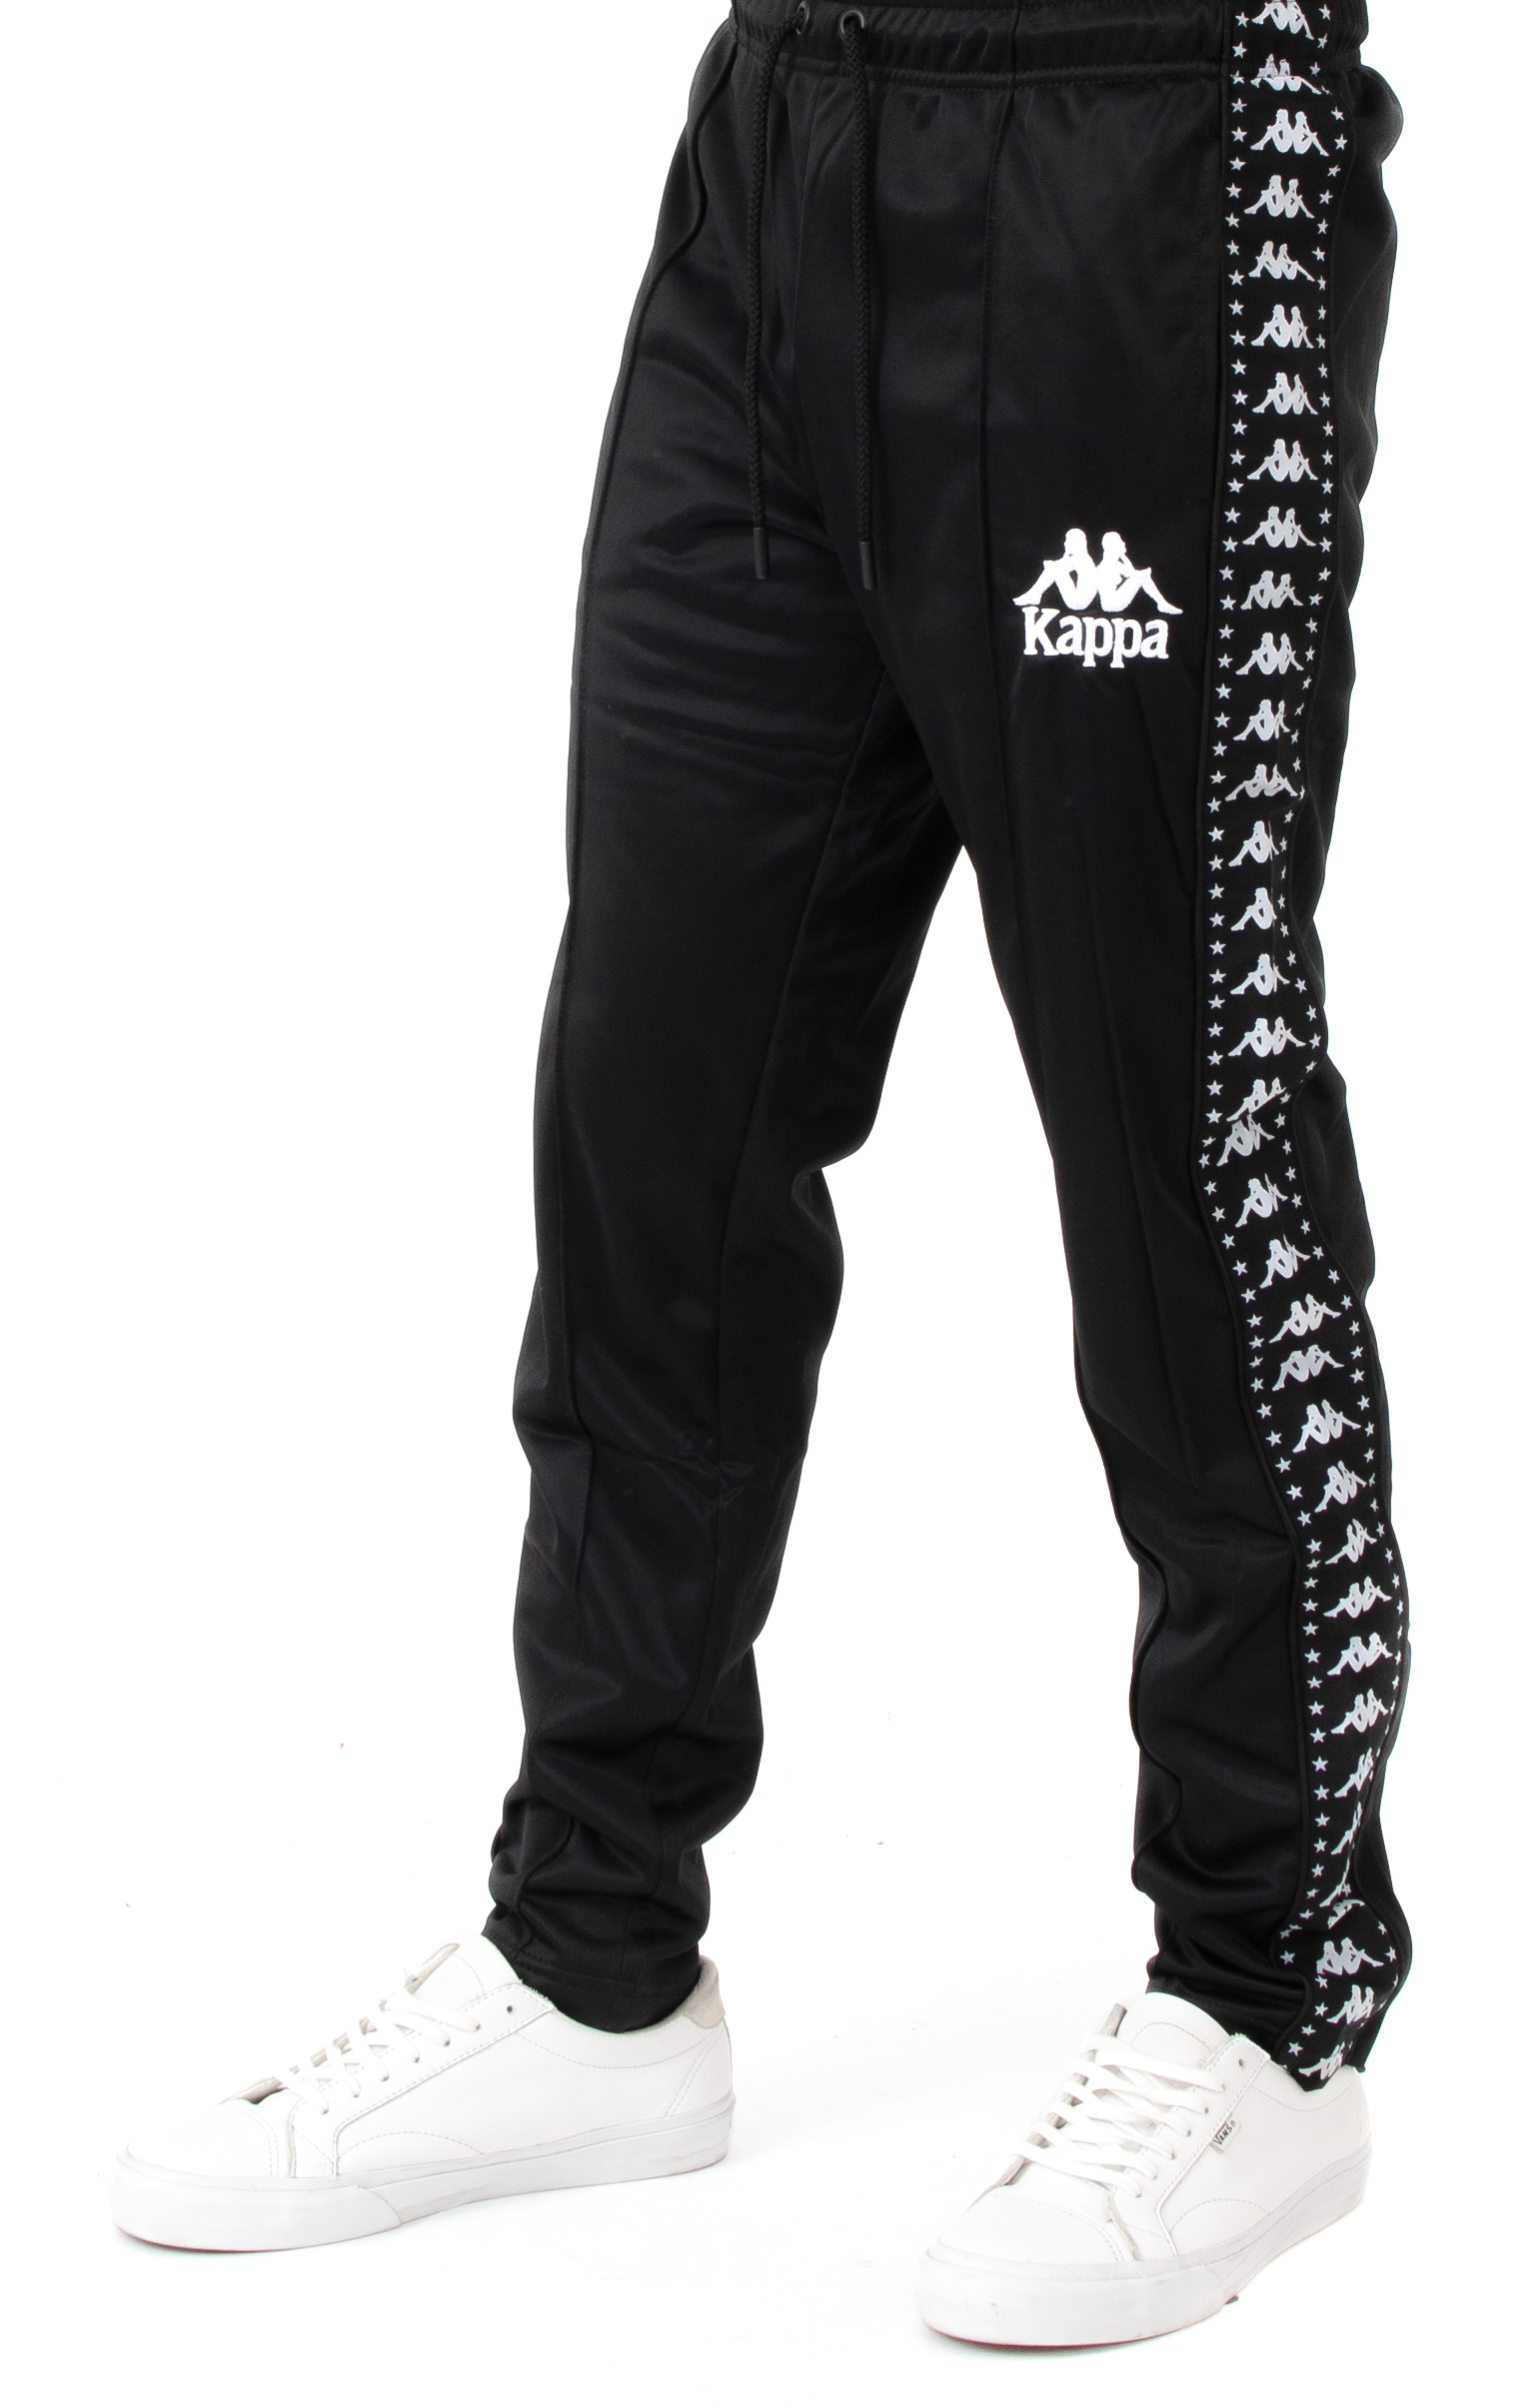 Authentic Anac Slim Fit Track Pants - Black/White